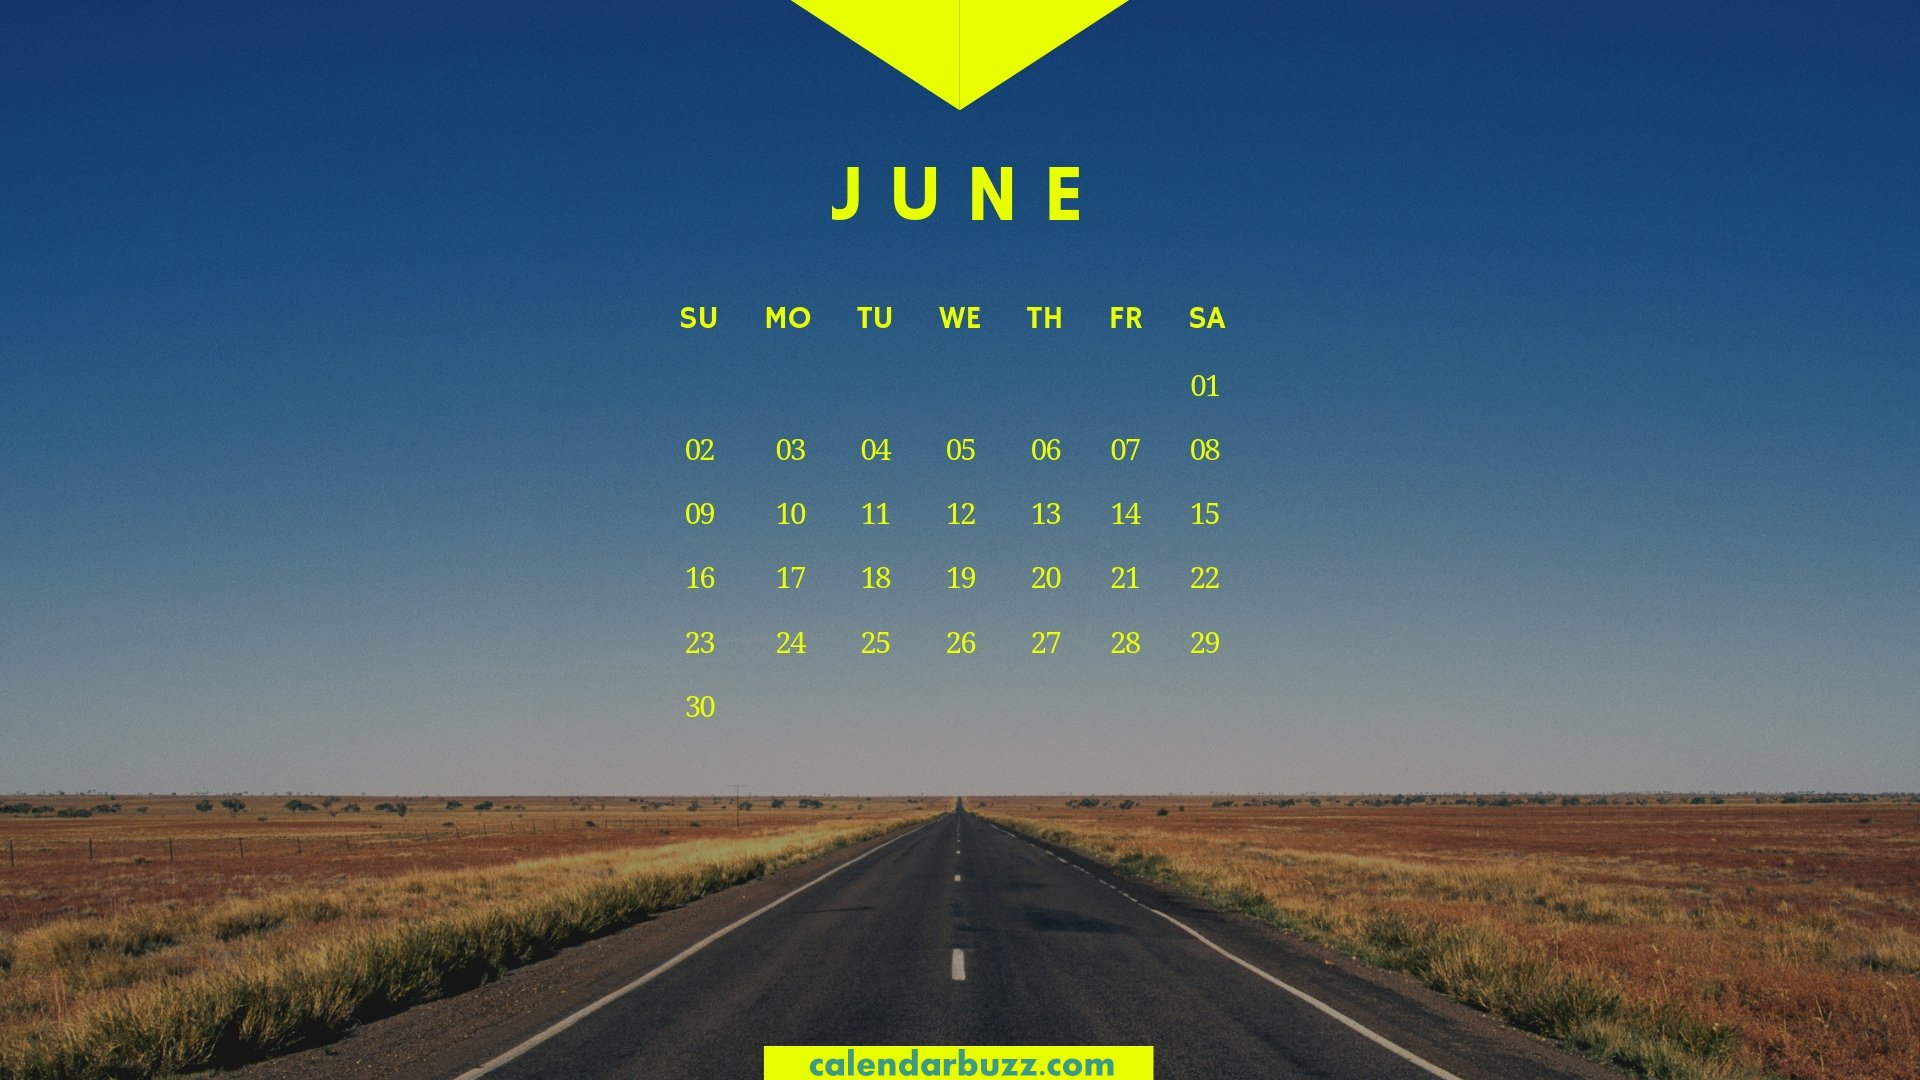 June 2019 Calendar HD Wallpaper   Printable Calendar 1920x1080